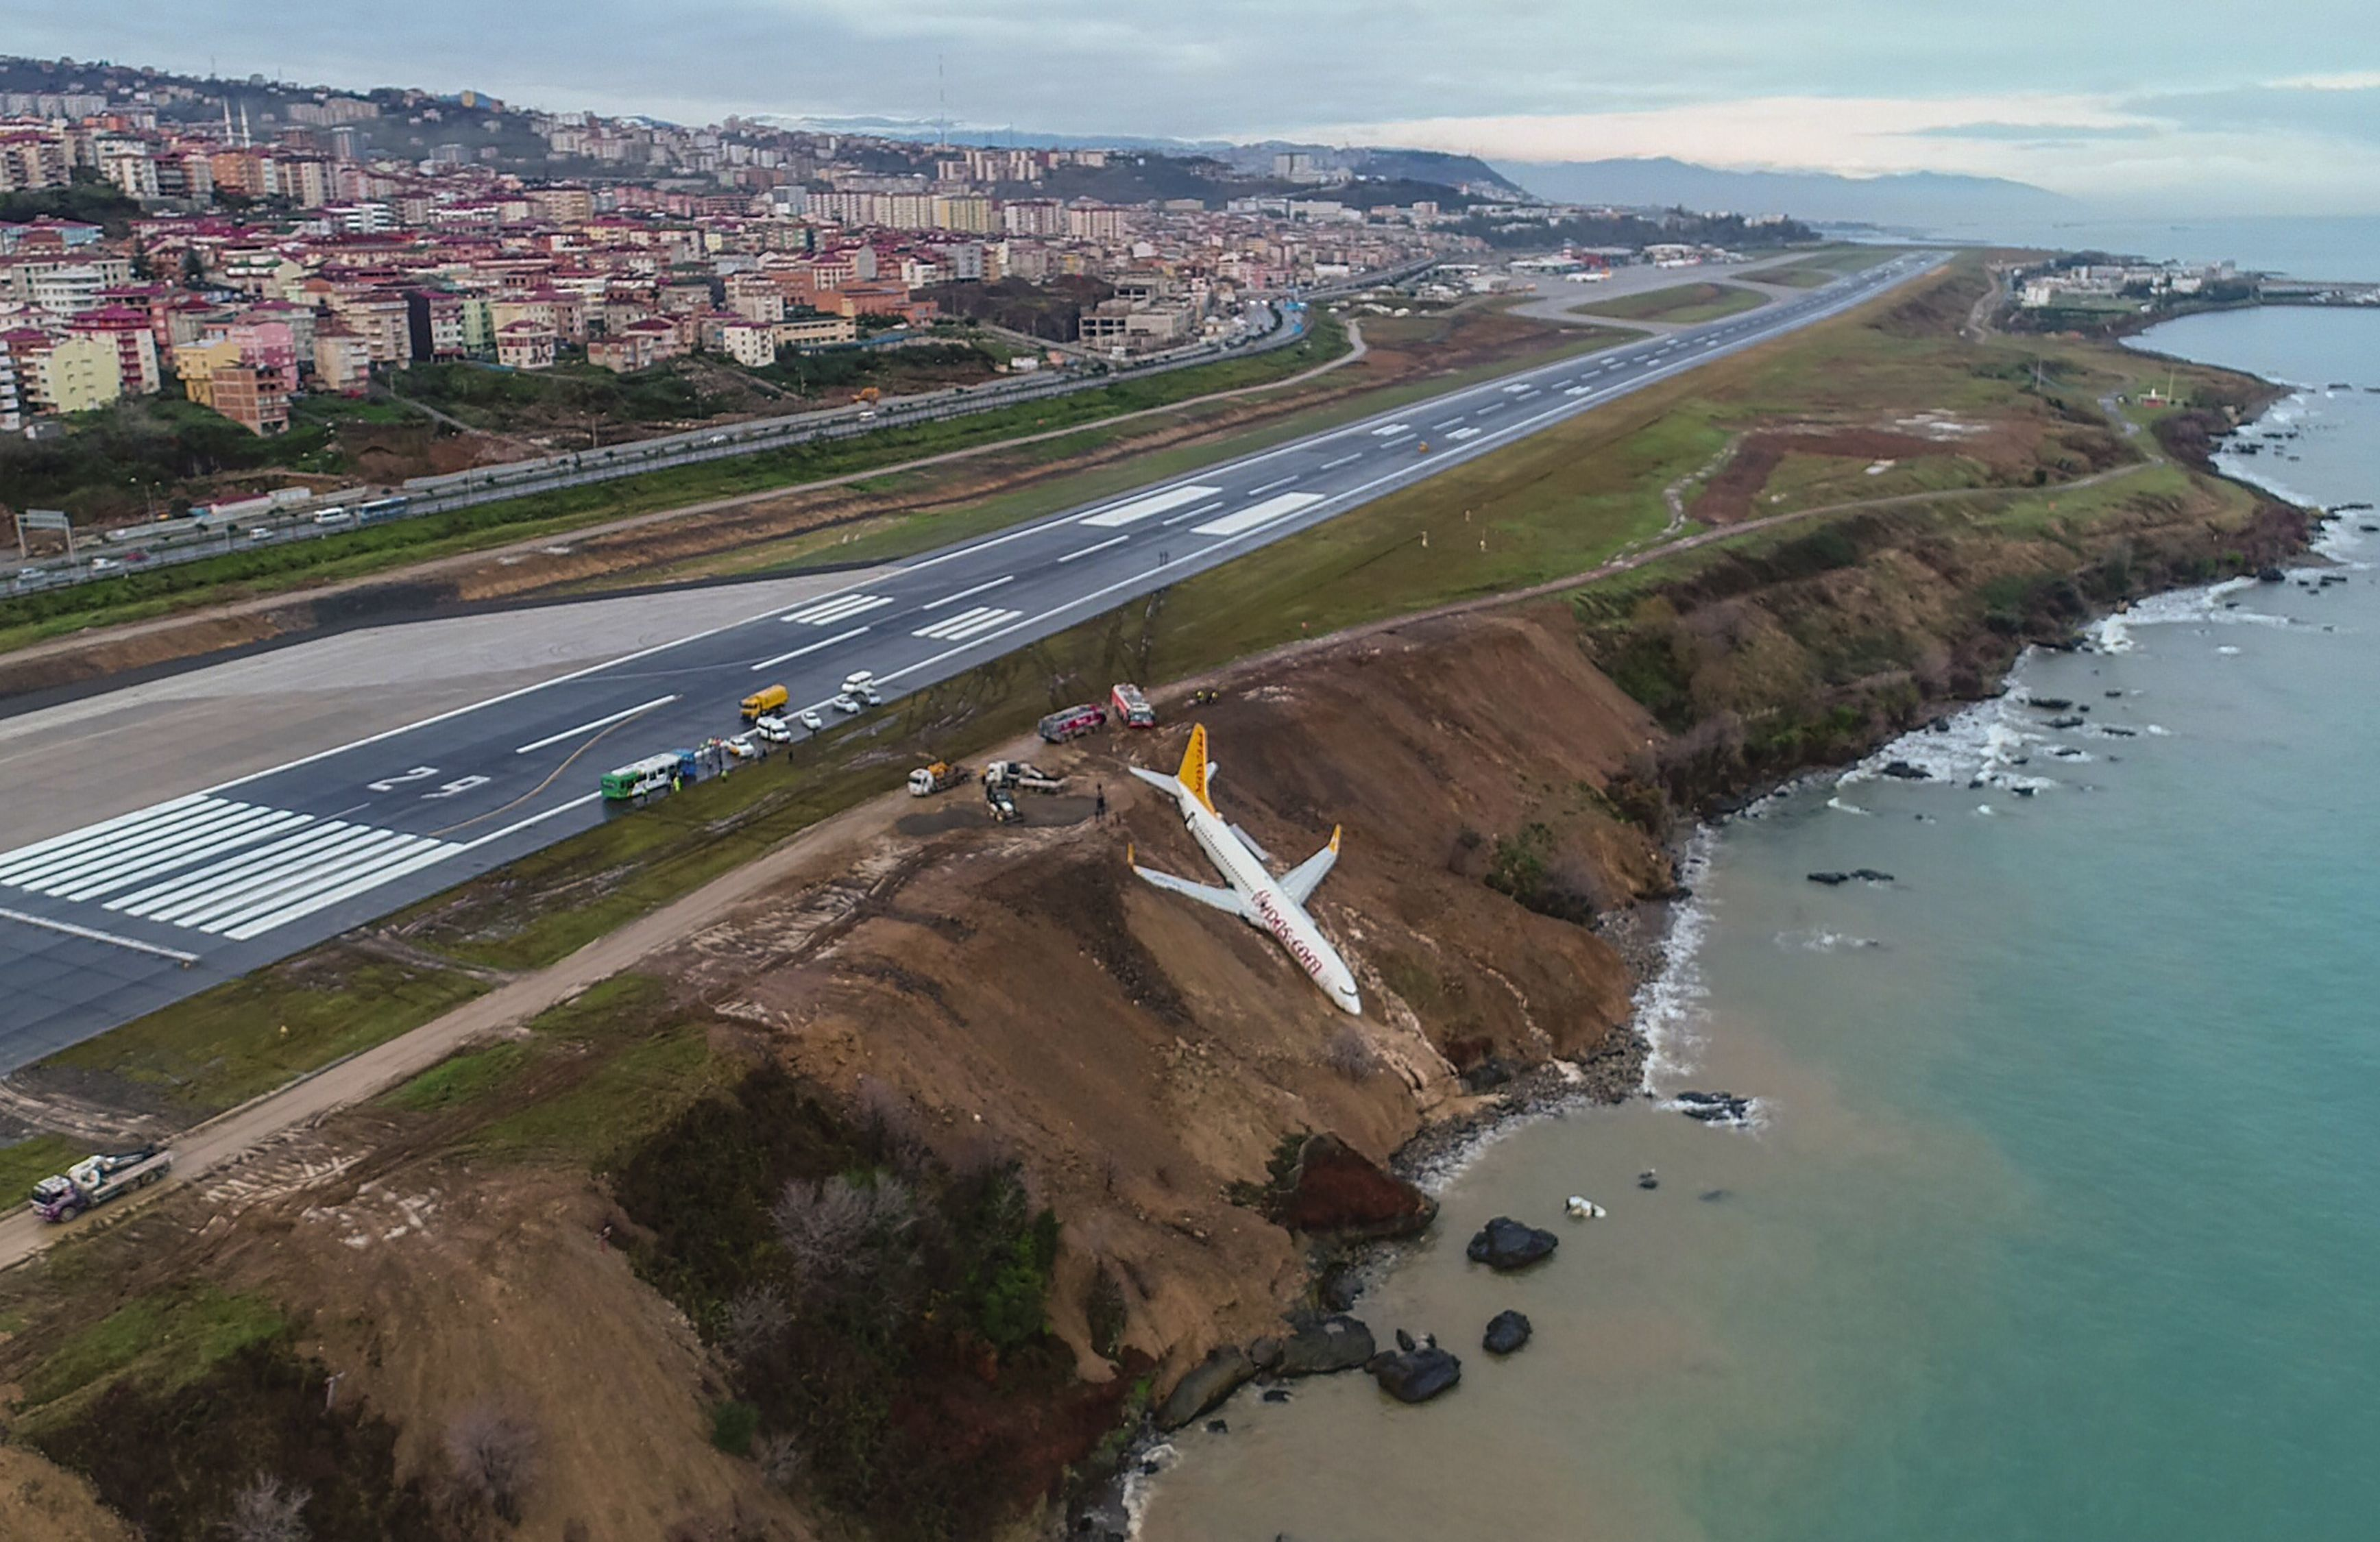 TOPSHOT - A Pegasus Airlines Boeing 737 passenger plane is seen struck in mud on an embankment, a day after skidding off the airstrip, after landing at Trabzon's airport on the Black Sea coast on January 14, 2018.  A passenger plane late on January 13 skidded off the runway just metres away from the sea as it landed at Trabzon's airport in northern Turkey. The Pegasus Airlines flight, with 168 people on board, had taken off from Ankara on its way to the northern province of Trabzon. No casualties were reported.  / AFP PHOTO / IHLAS NEWS AGENCY / STRINGER / Turkey OUT        (Photo credit should read STRINGER/AFP/Getty Images)